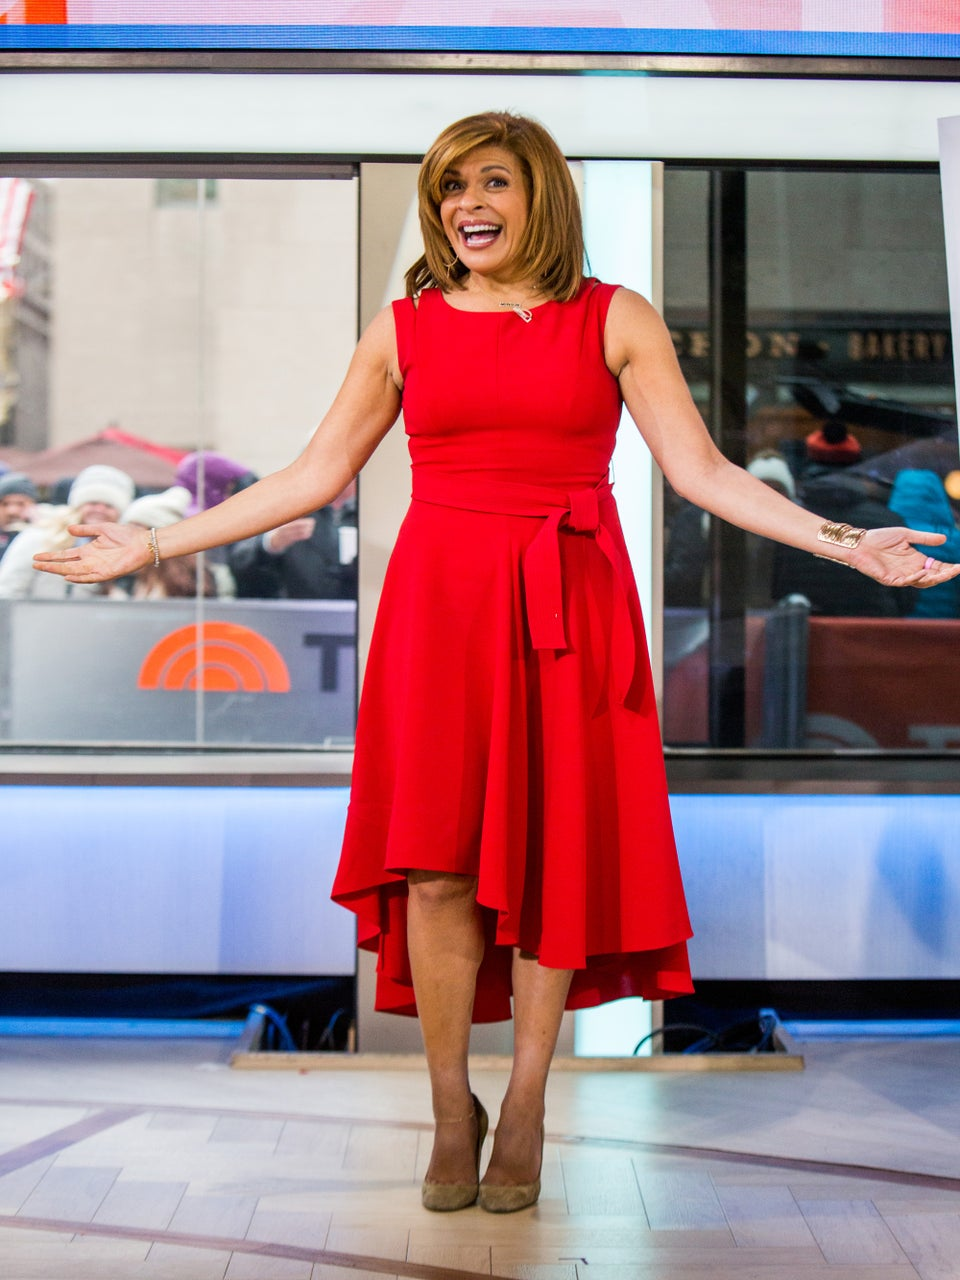 Hoda Kotb Is The Right Choice To Replace Matt Lauer, But Now We Need To Discuss Pay